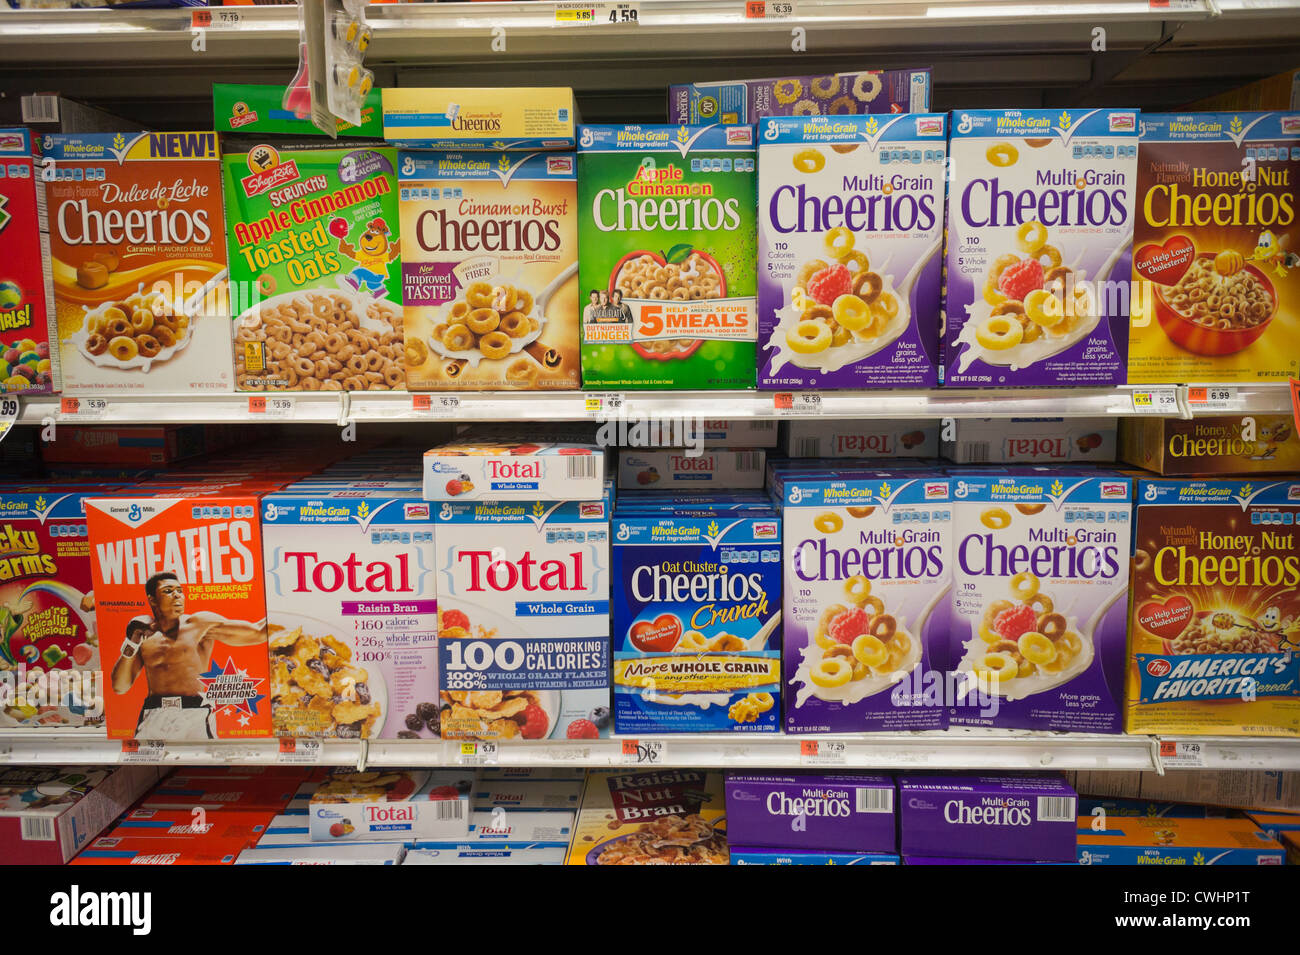 Boxes of General Mills breakfast cereals mixed in with house brand similars on supermarket shelves - Stock Image